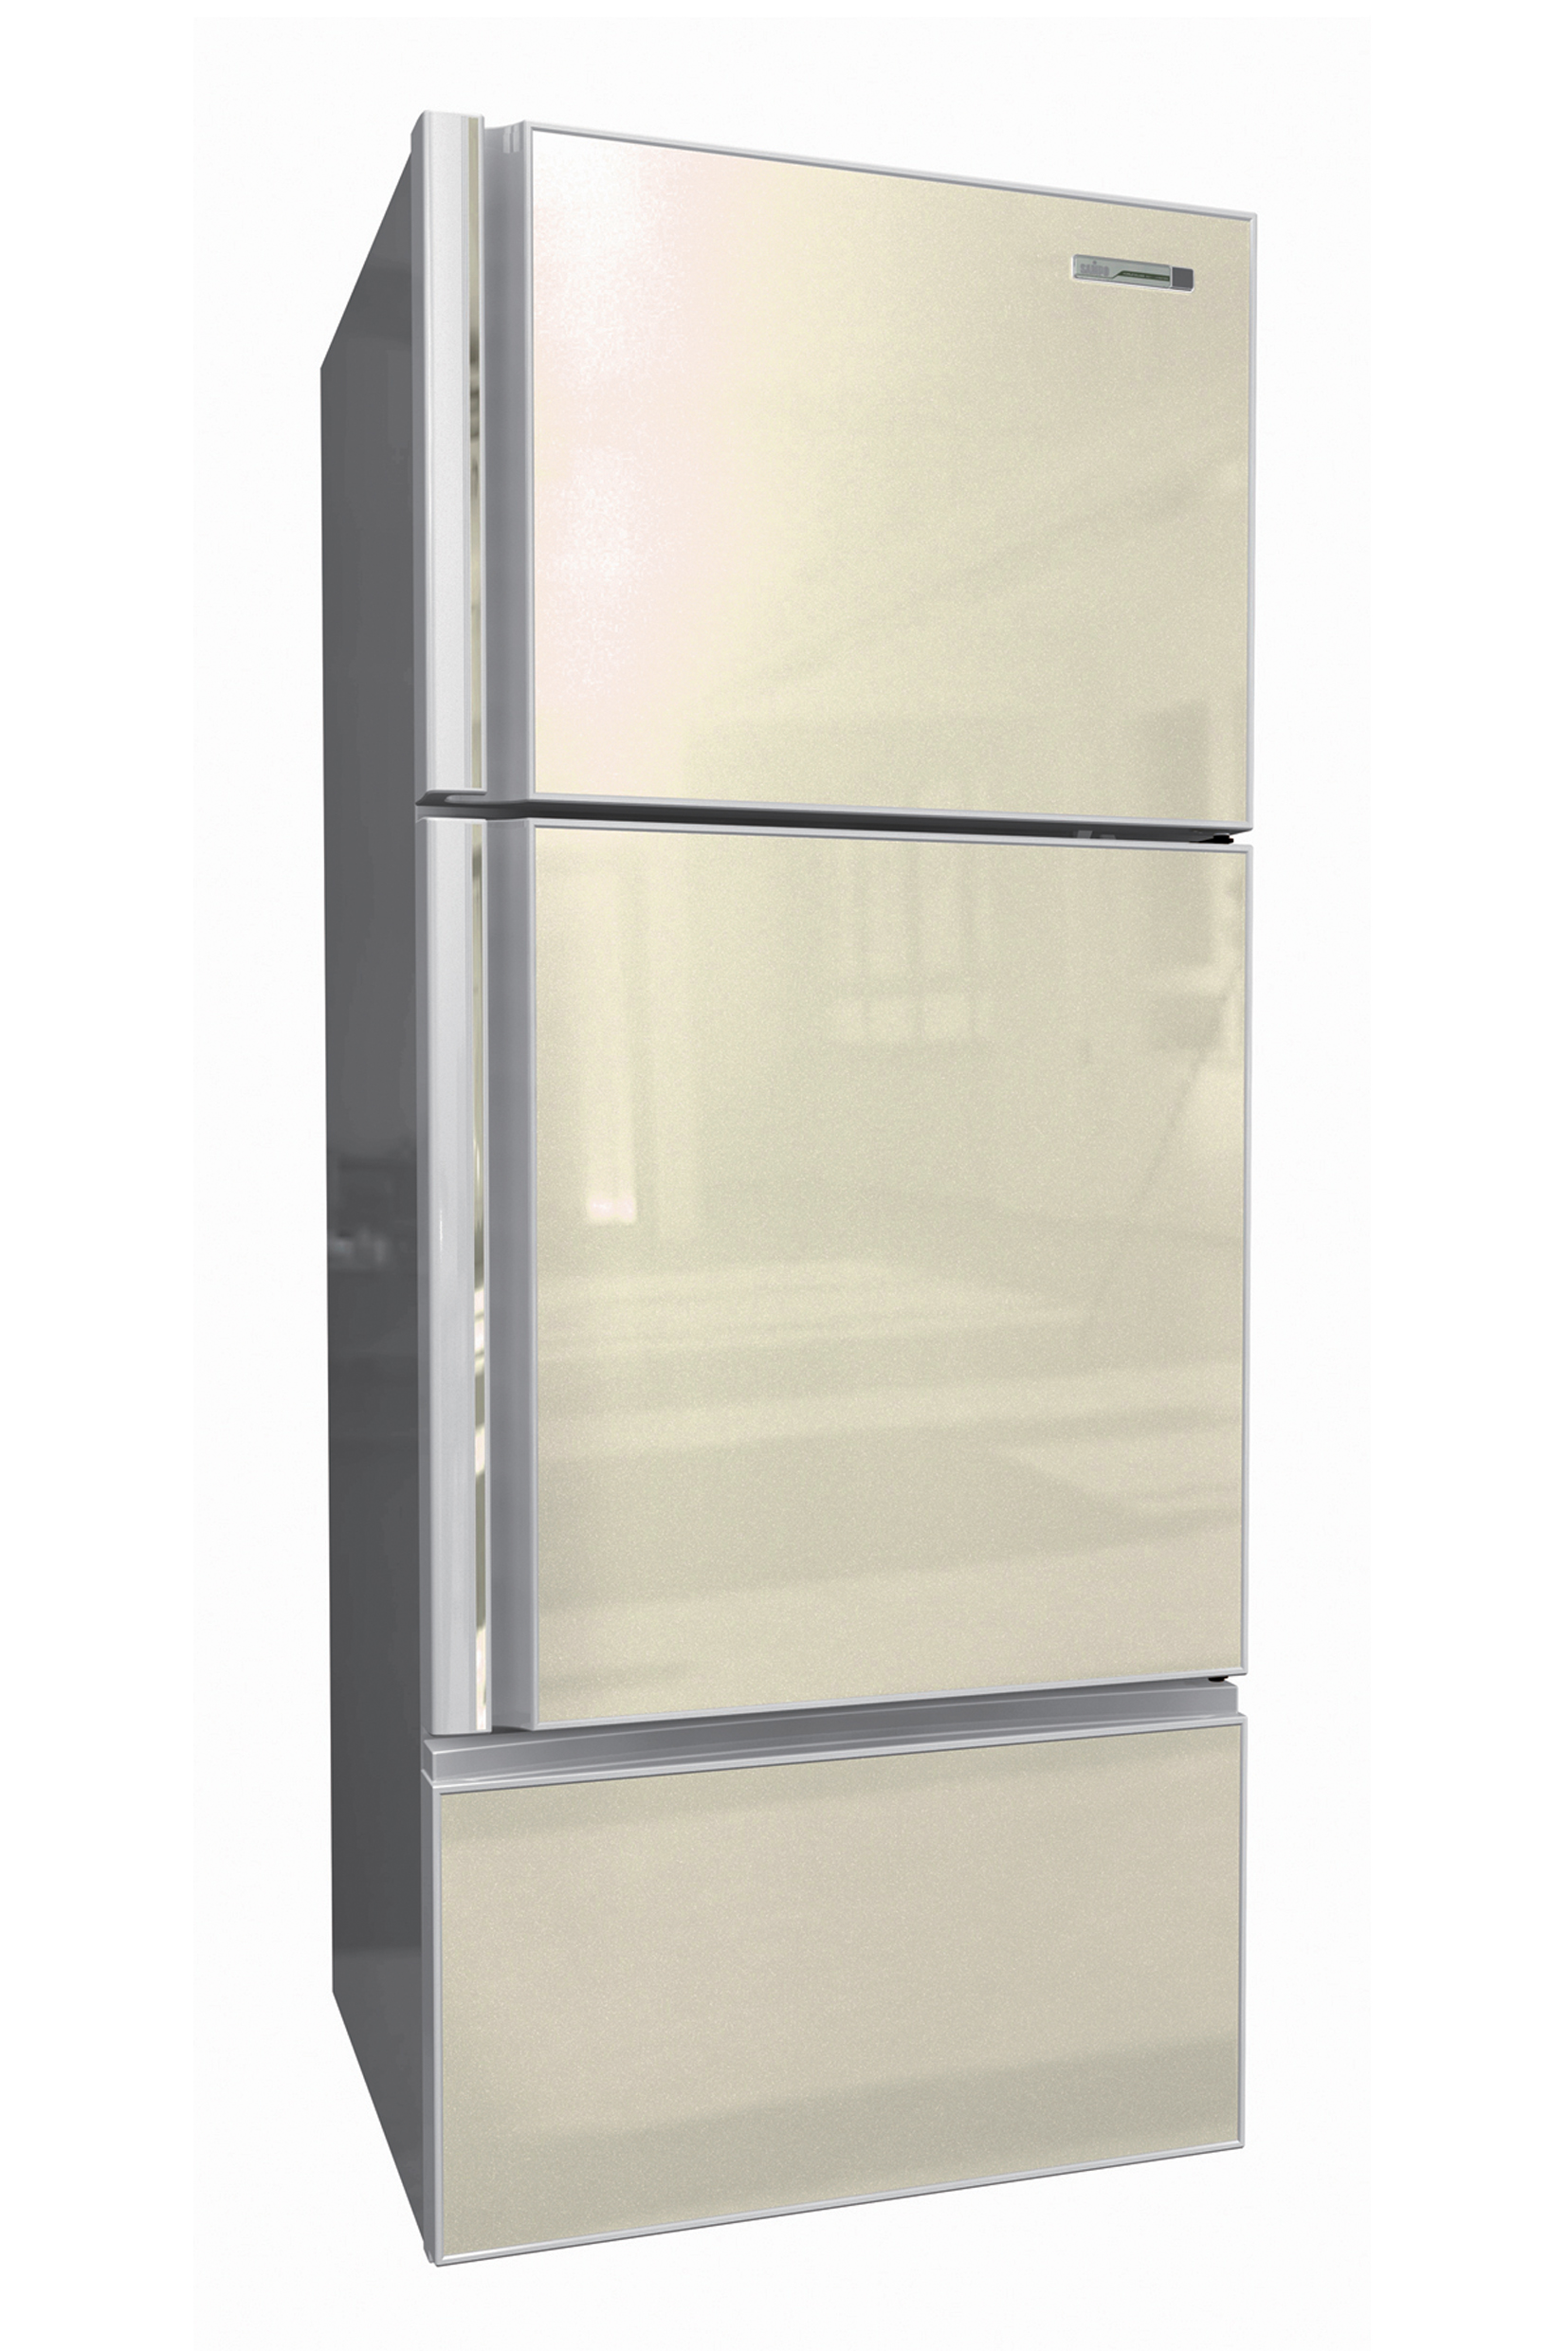 Glass refrigerator series